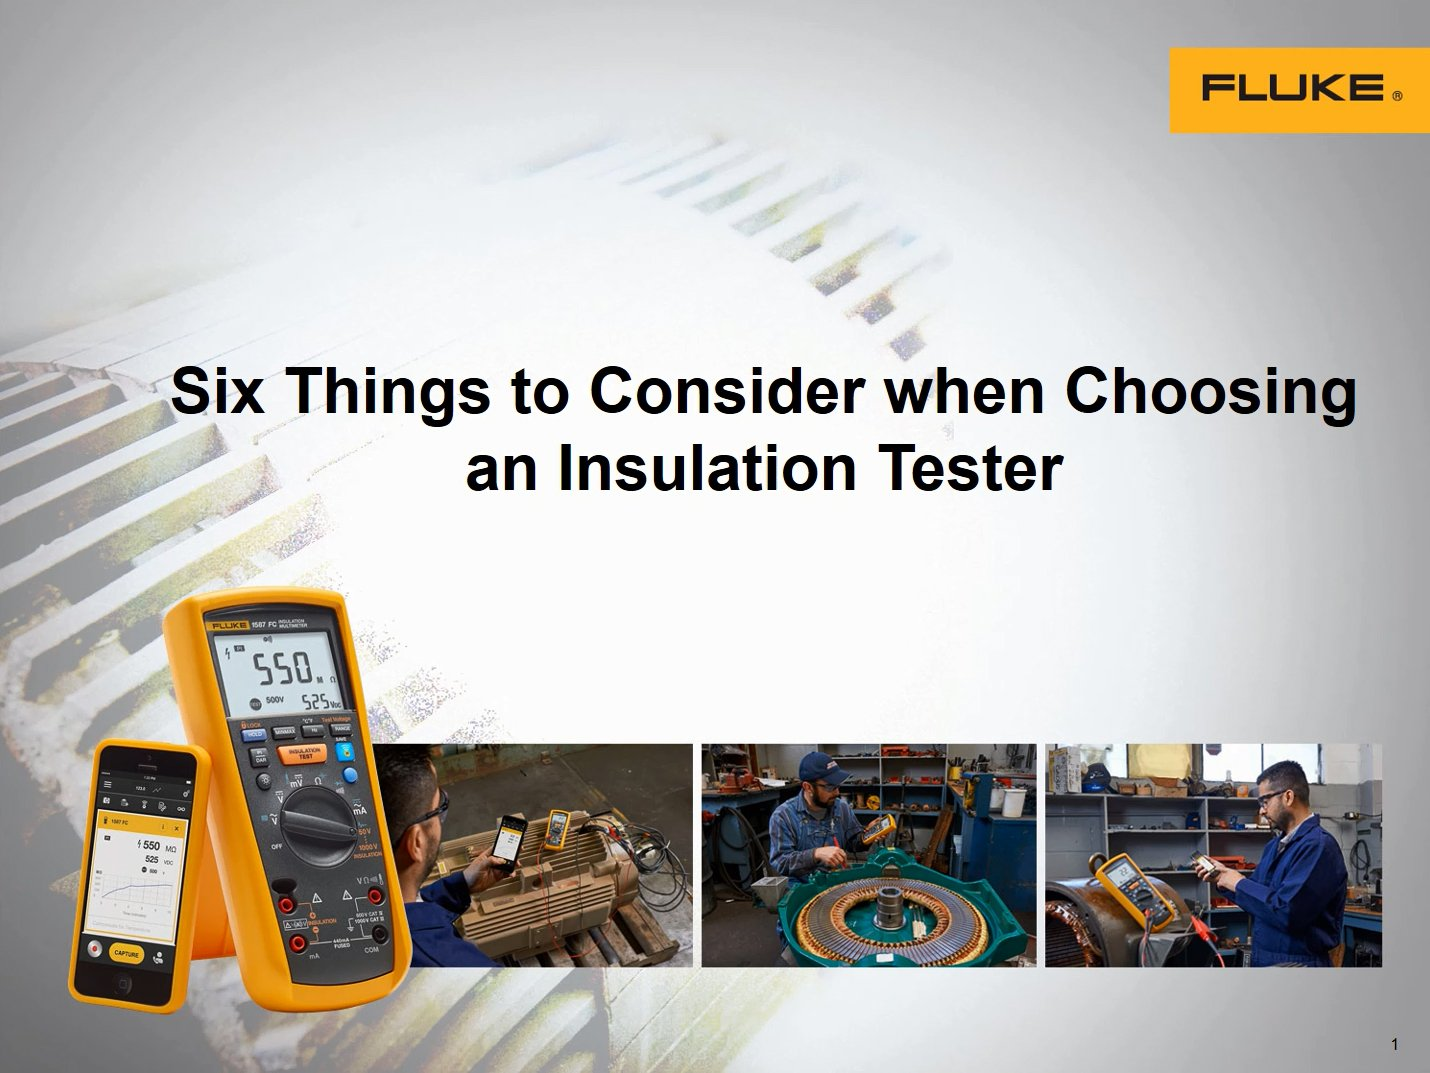 Six things to consider when choosing an Insulation Tester